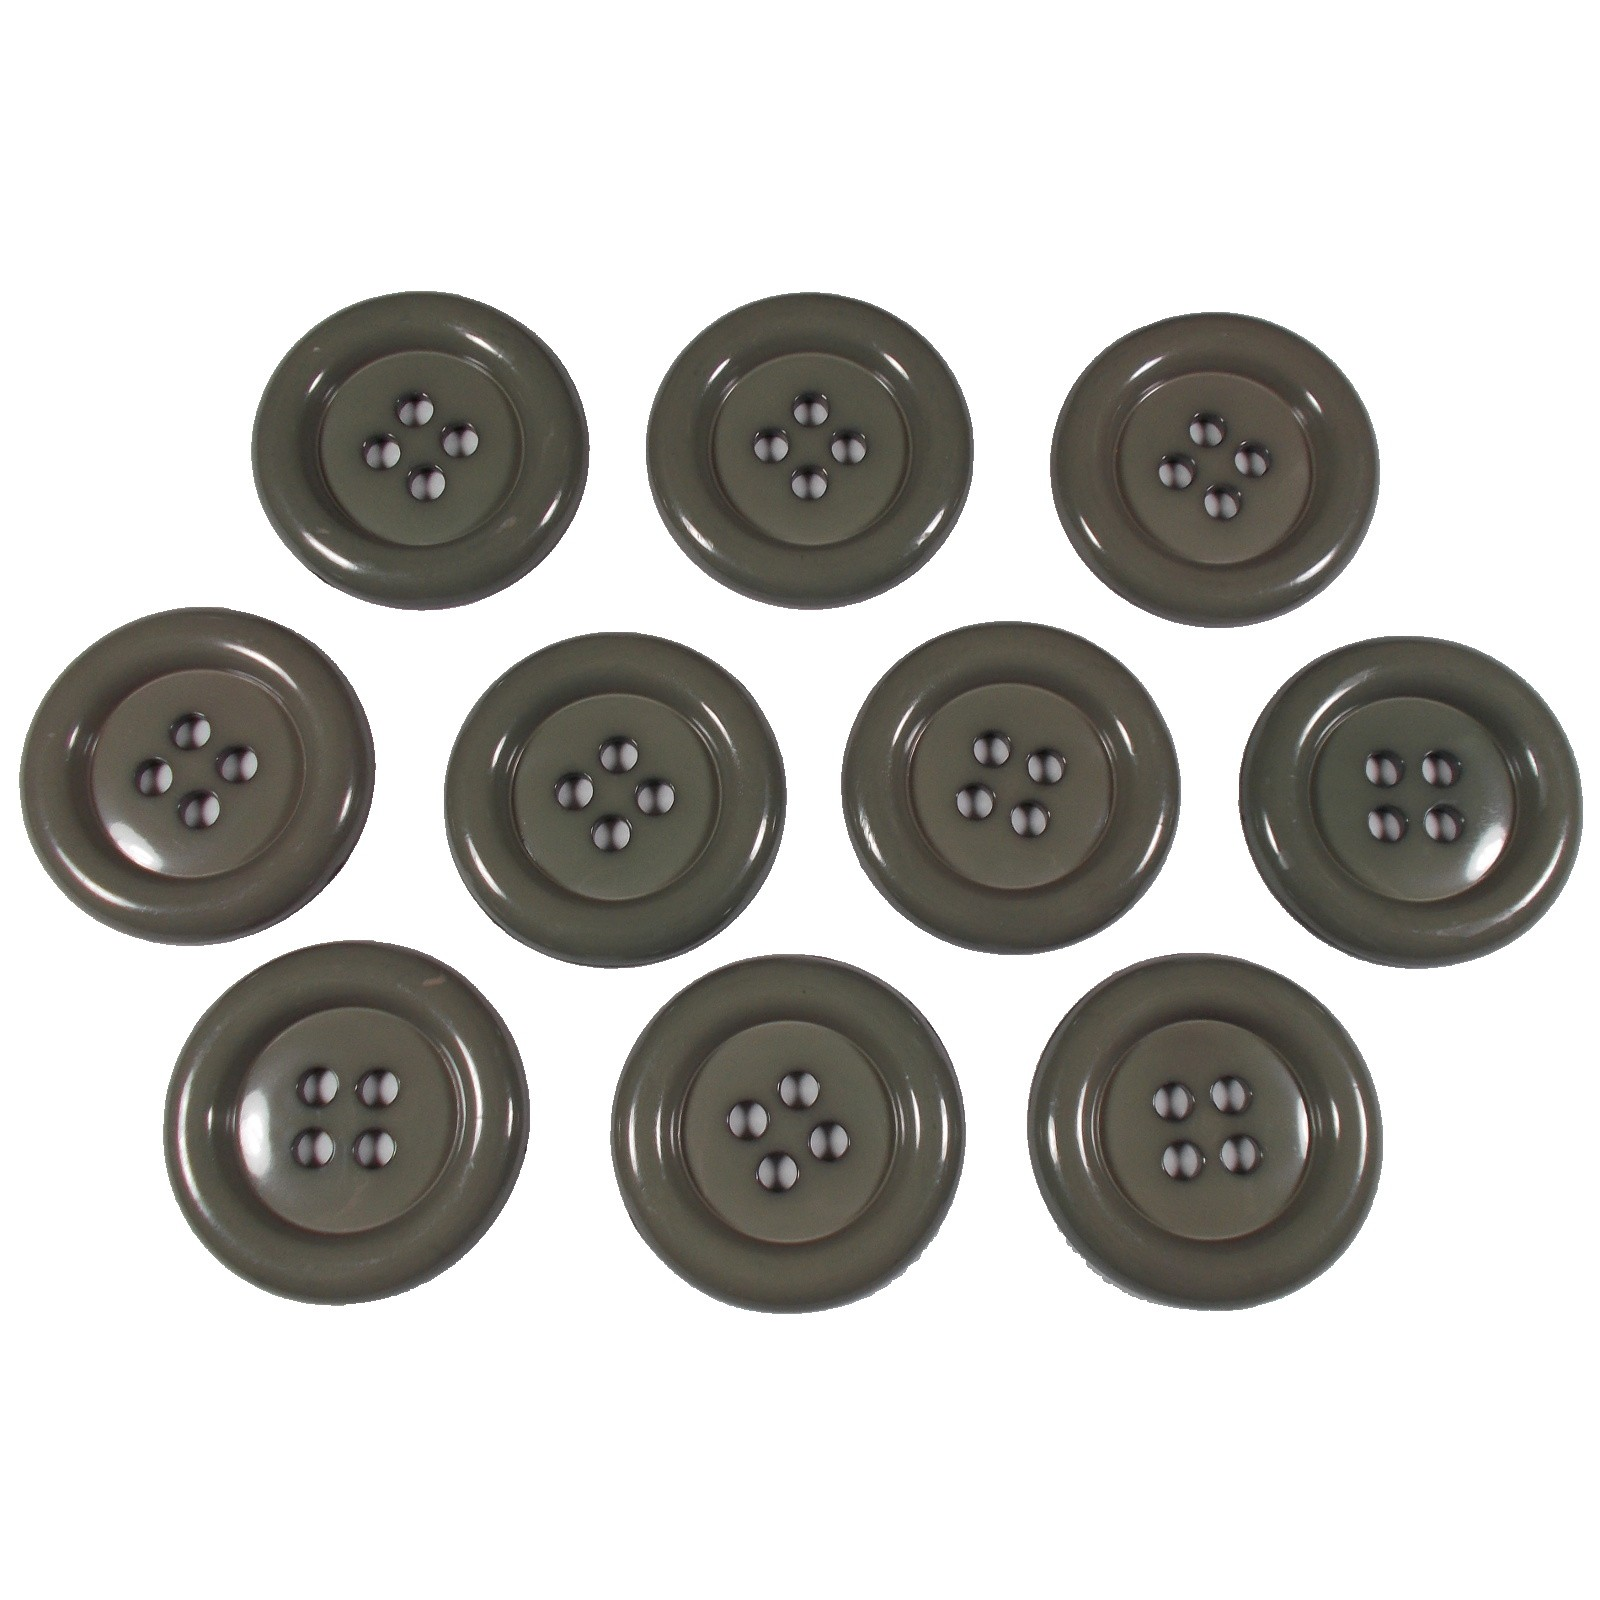 Large Round Clown Buttons 4 Hole 50mm Grey Pack of 10